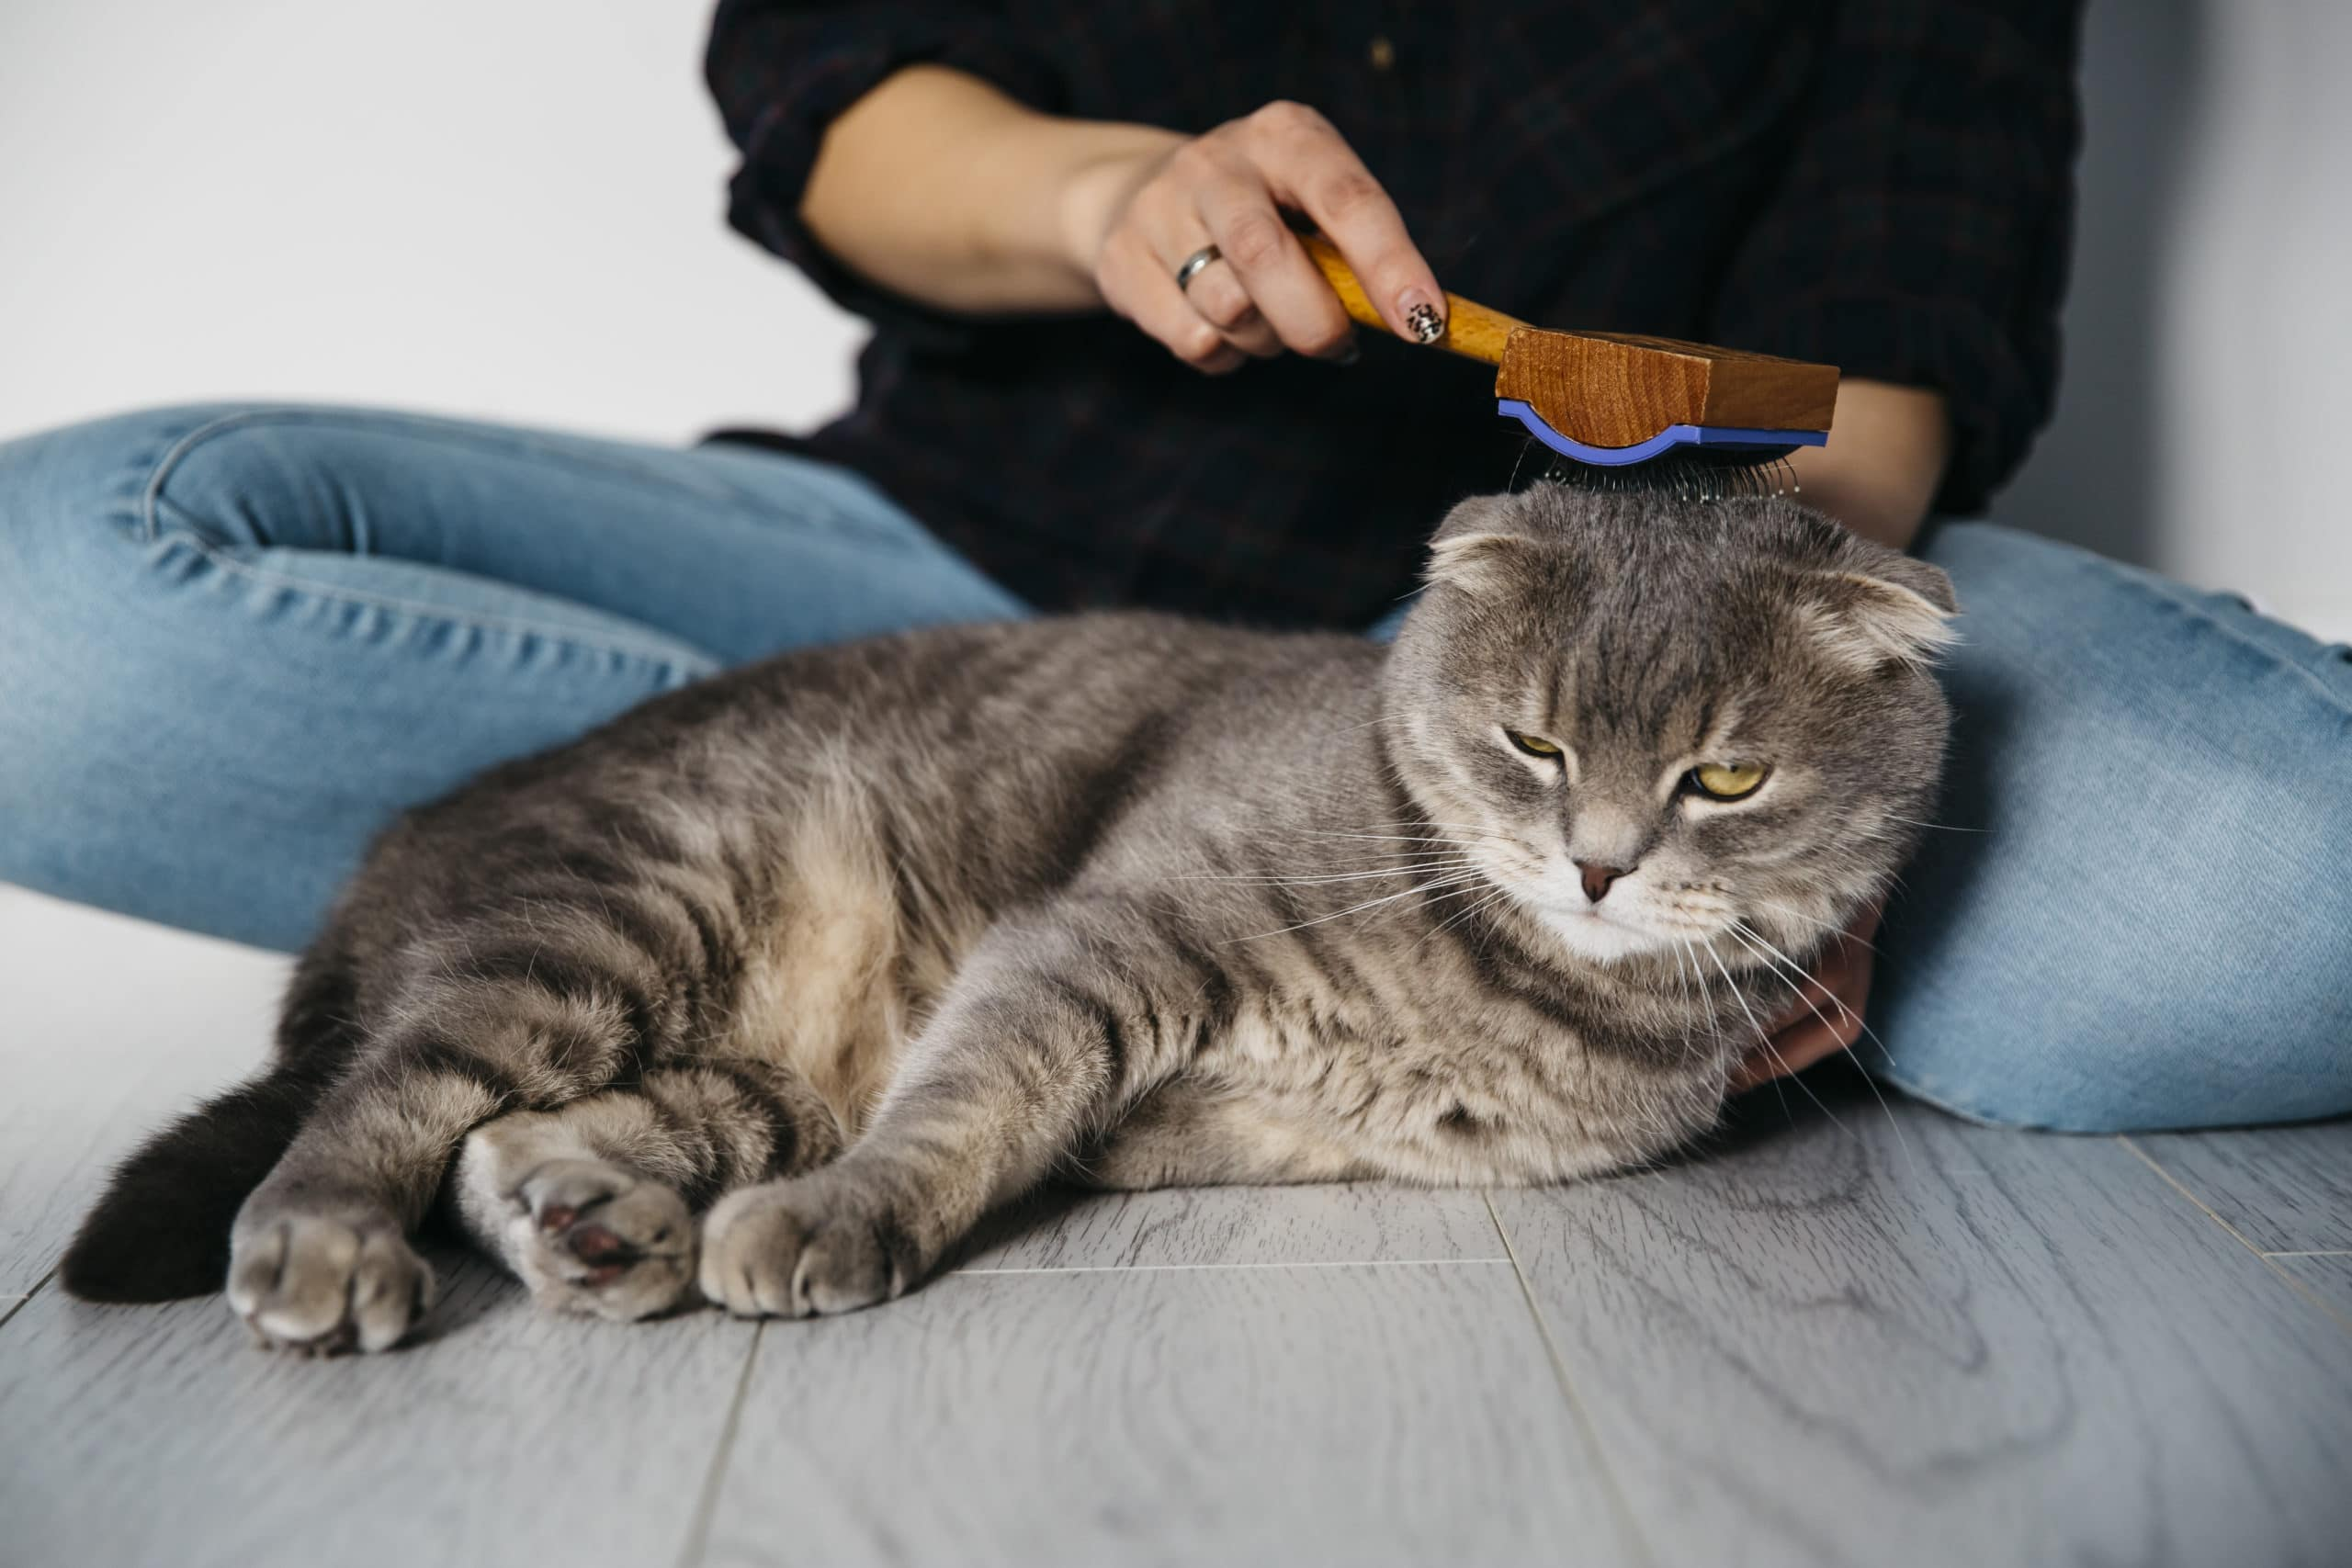 If you keep up on your cat's grooming, it might mean you don't have to give a senior cat a bath.